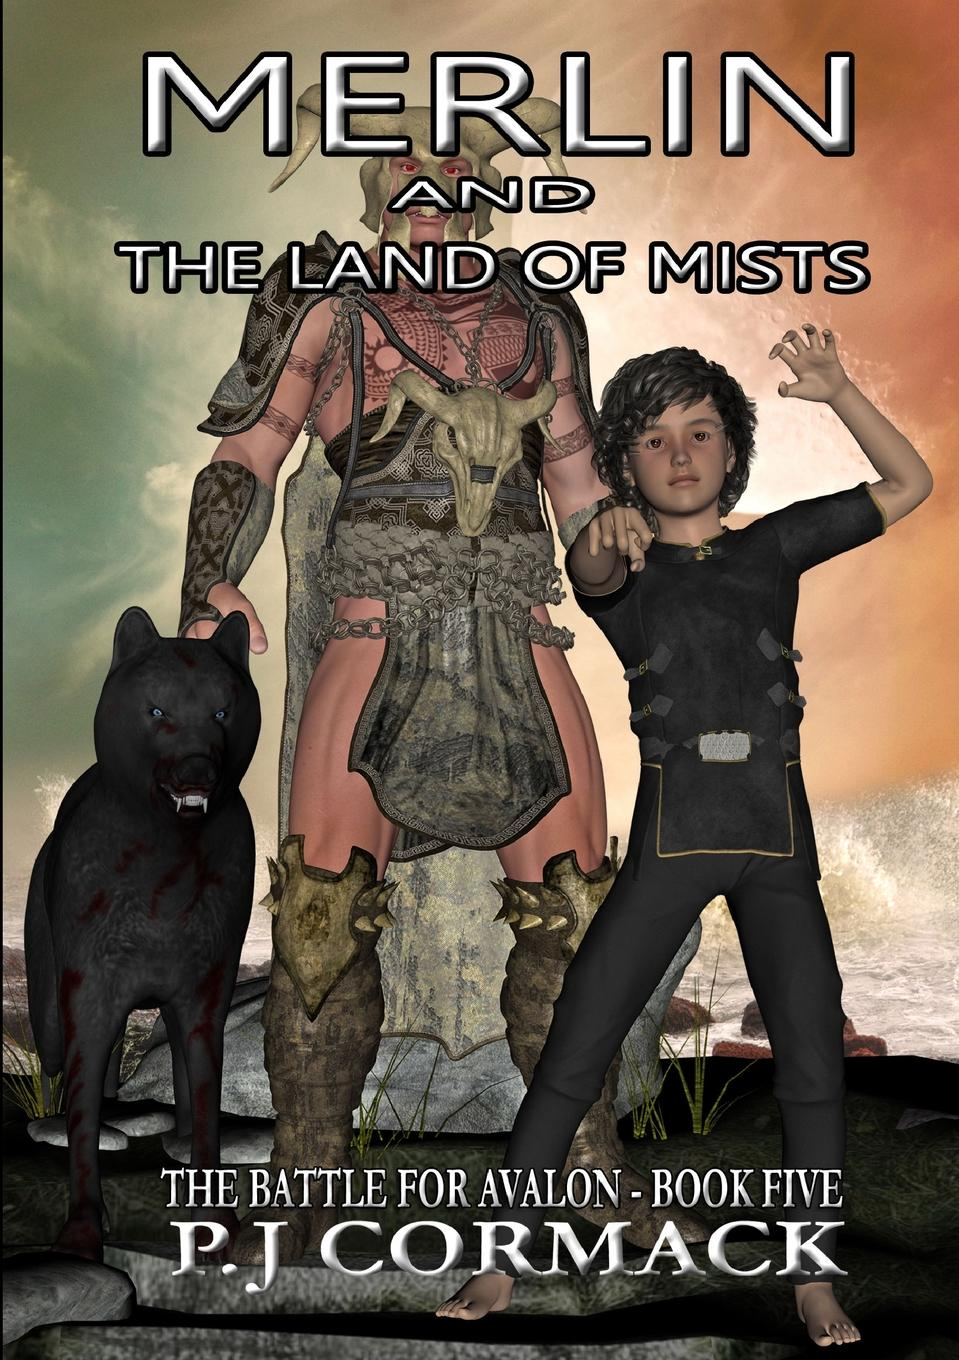 P.J Cormack Merlin and the Land of Mists Book Five. The Battle for Avalon avalon web of magic book 2